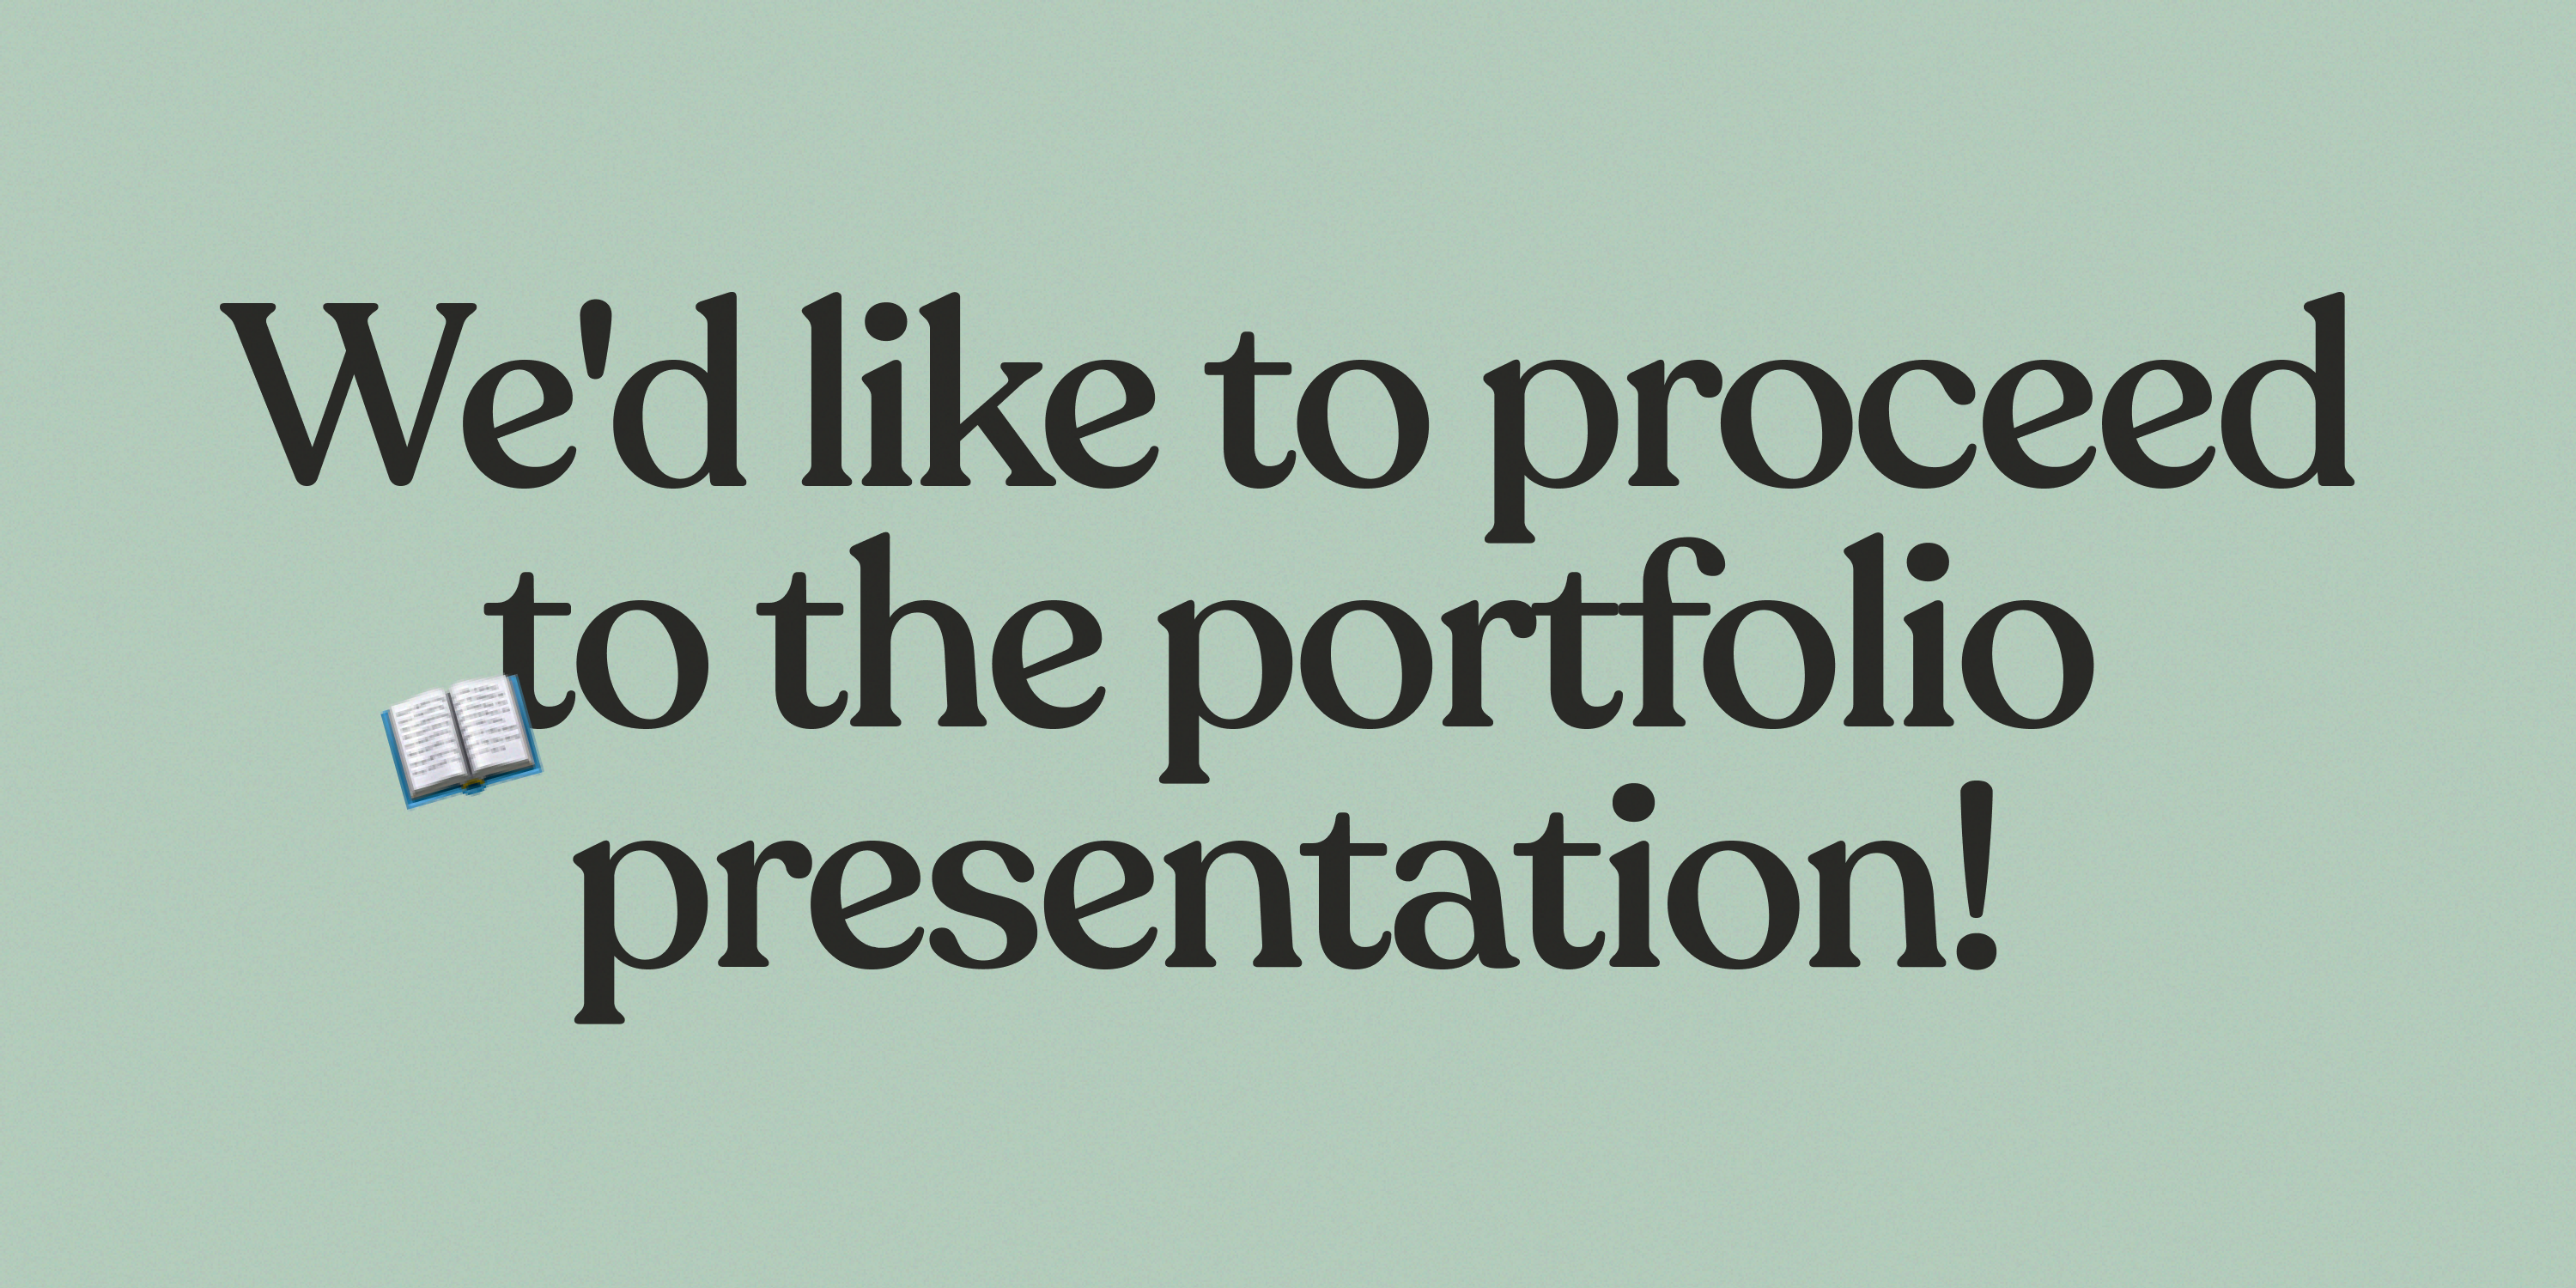 """Illustration that says, """"We'd like to proceed to the portfolio presentation"""""""